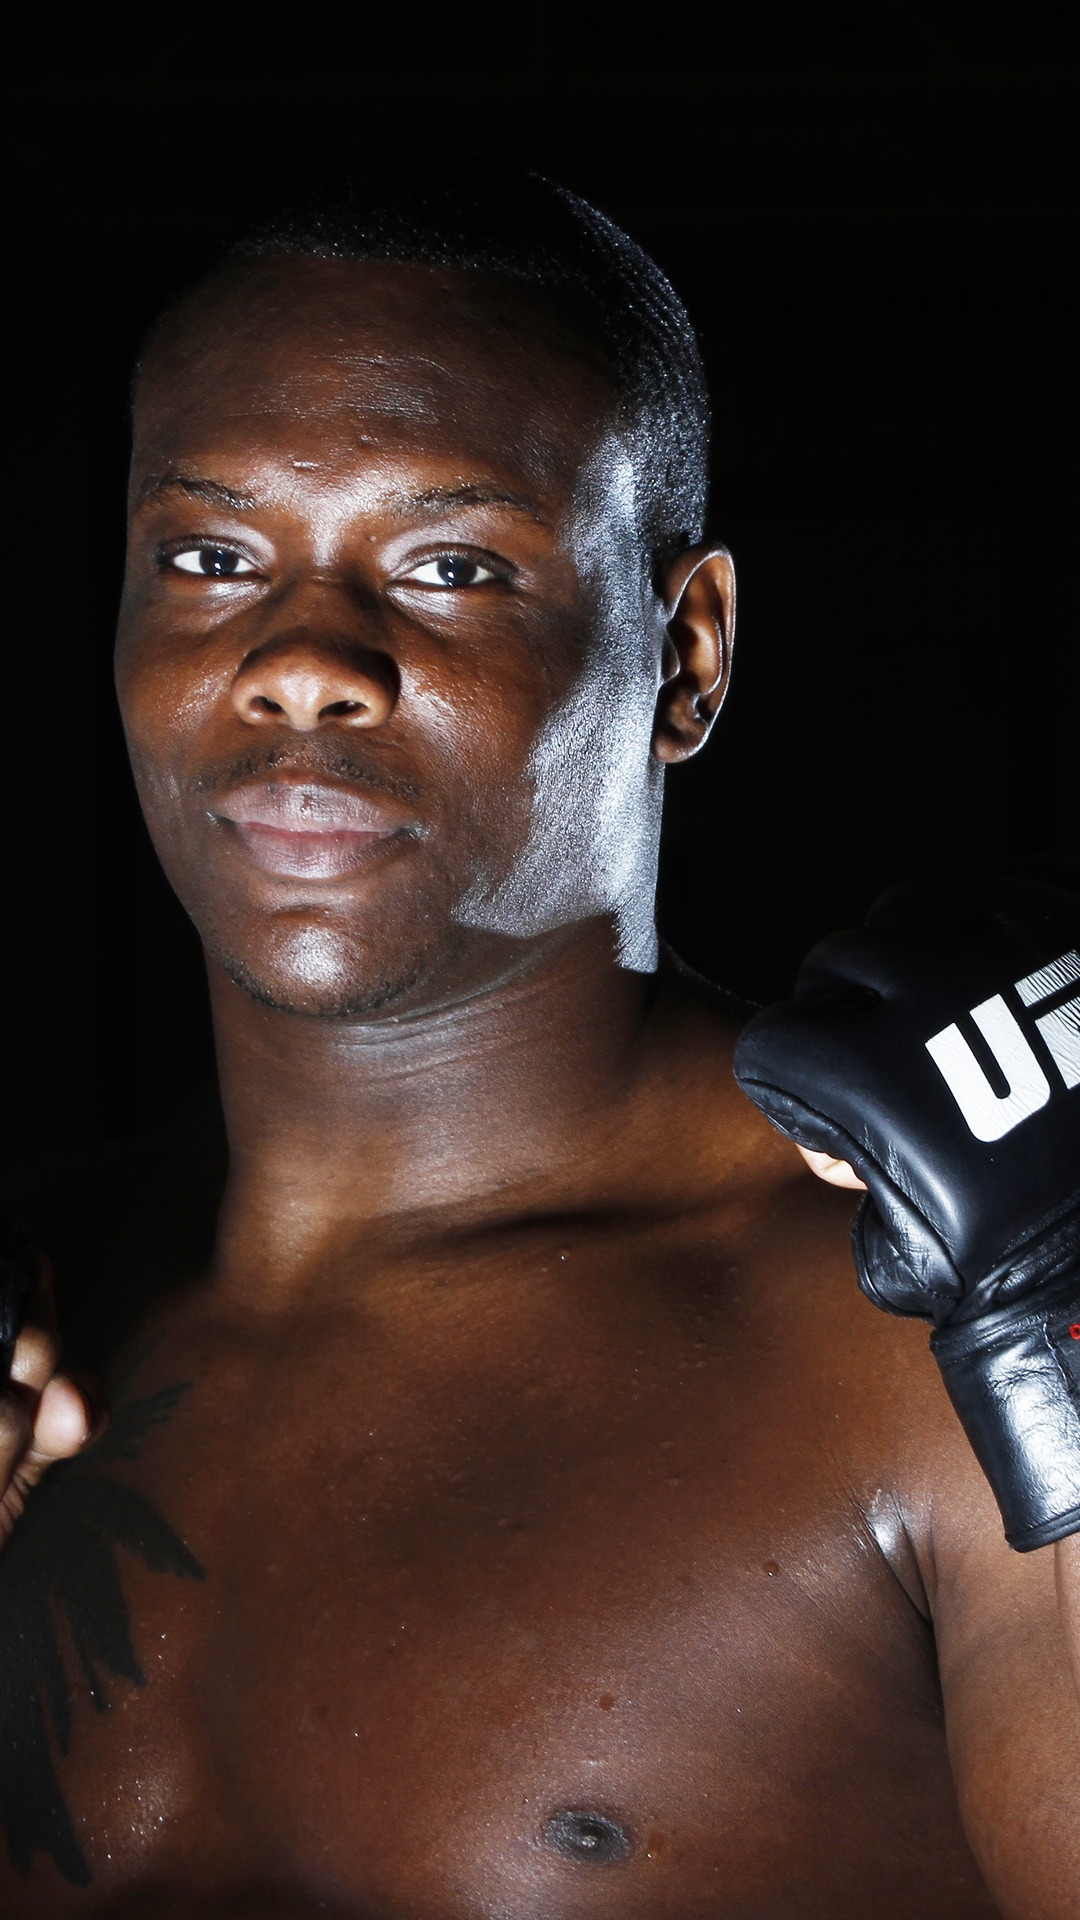 Download wallpaper 1080x1920 ovince saint preux ultimate fighting 1080x1920